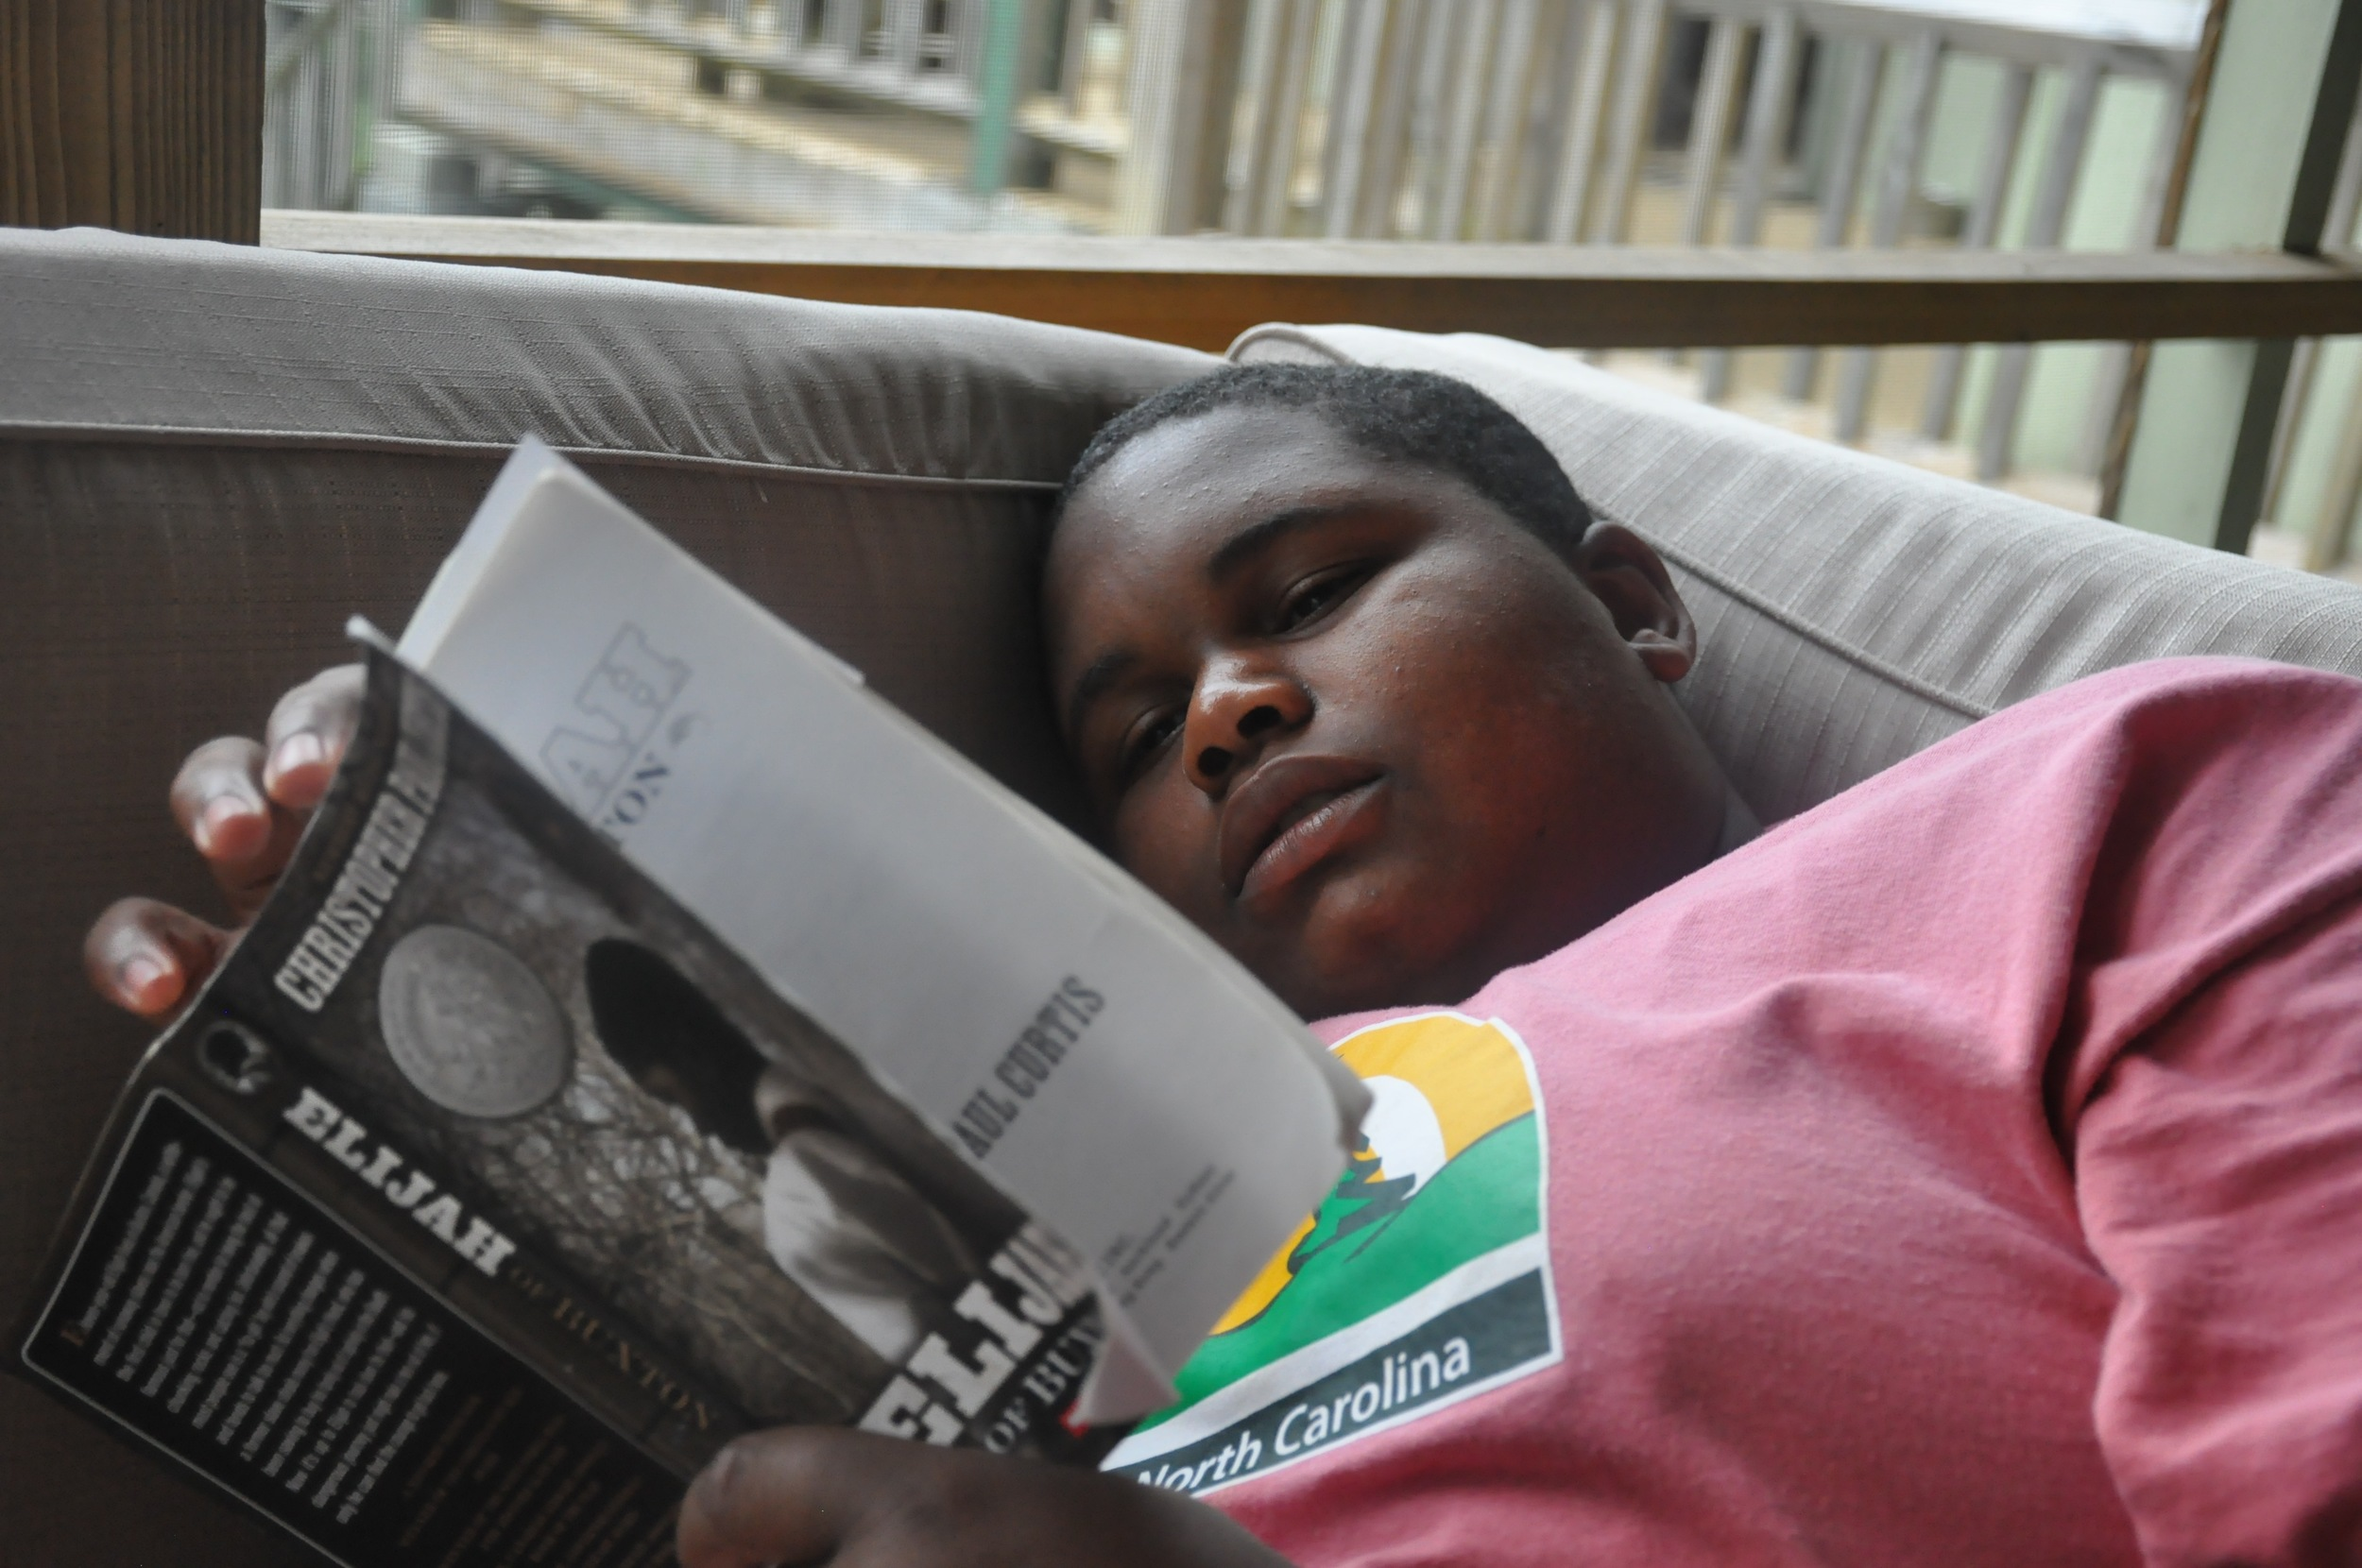 sleeping-or-reading-i-think-reading.jpg